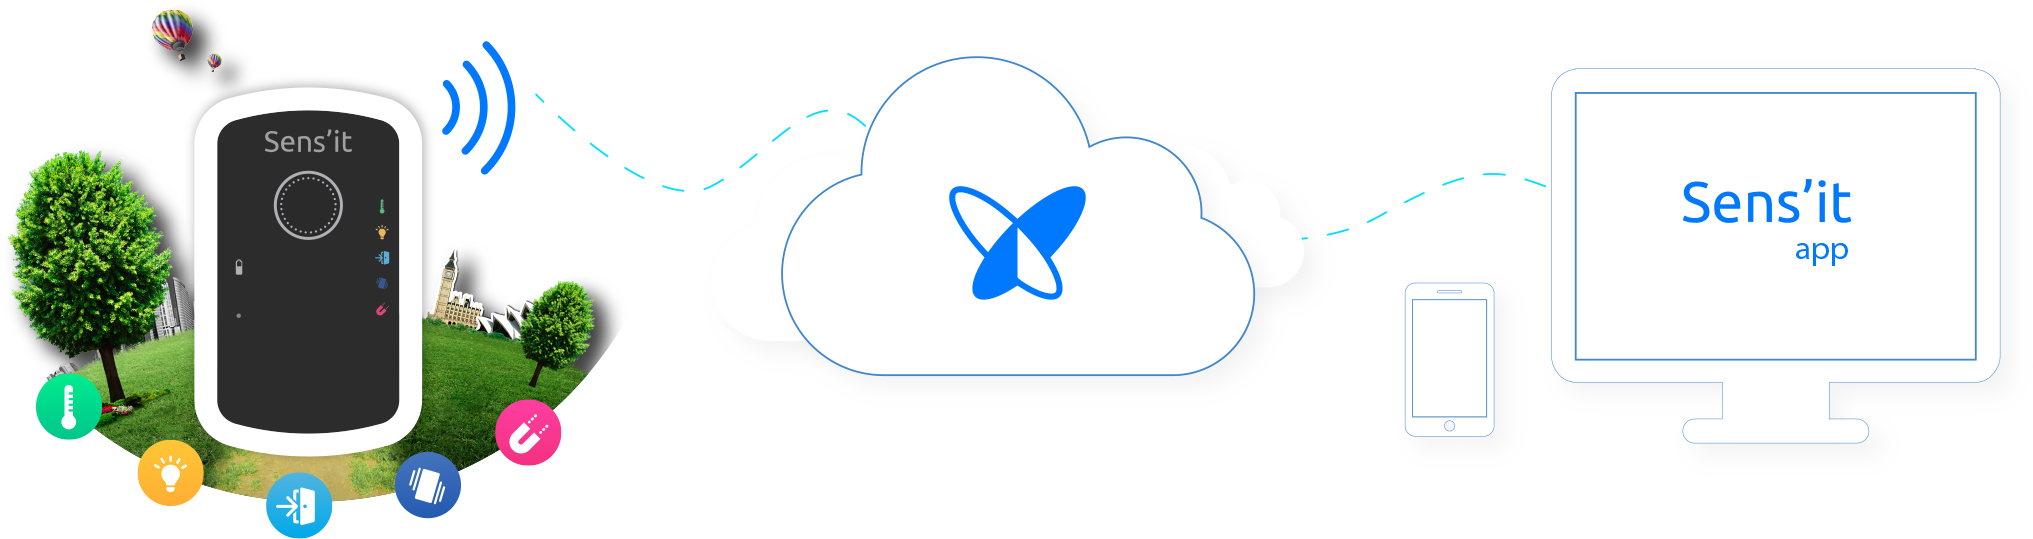 sensit, cloud and app diagram